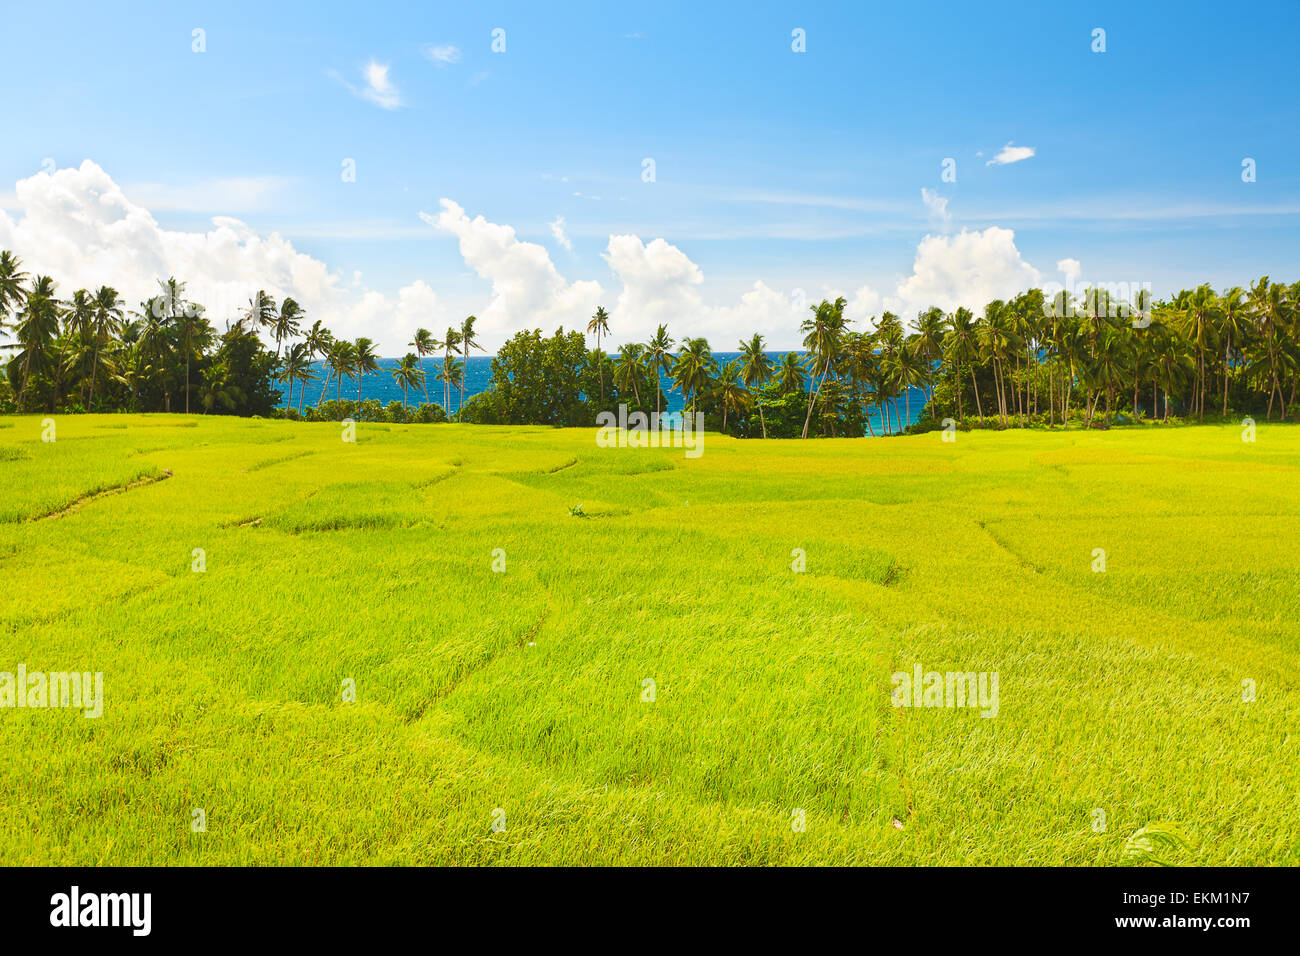 Paddy rice field. Sea on the background - Stock Image